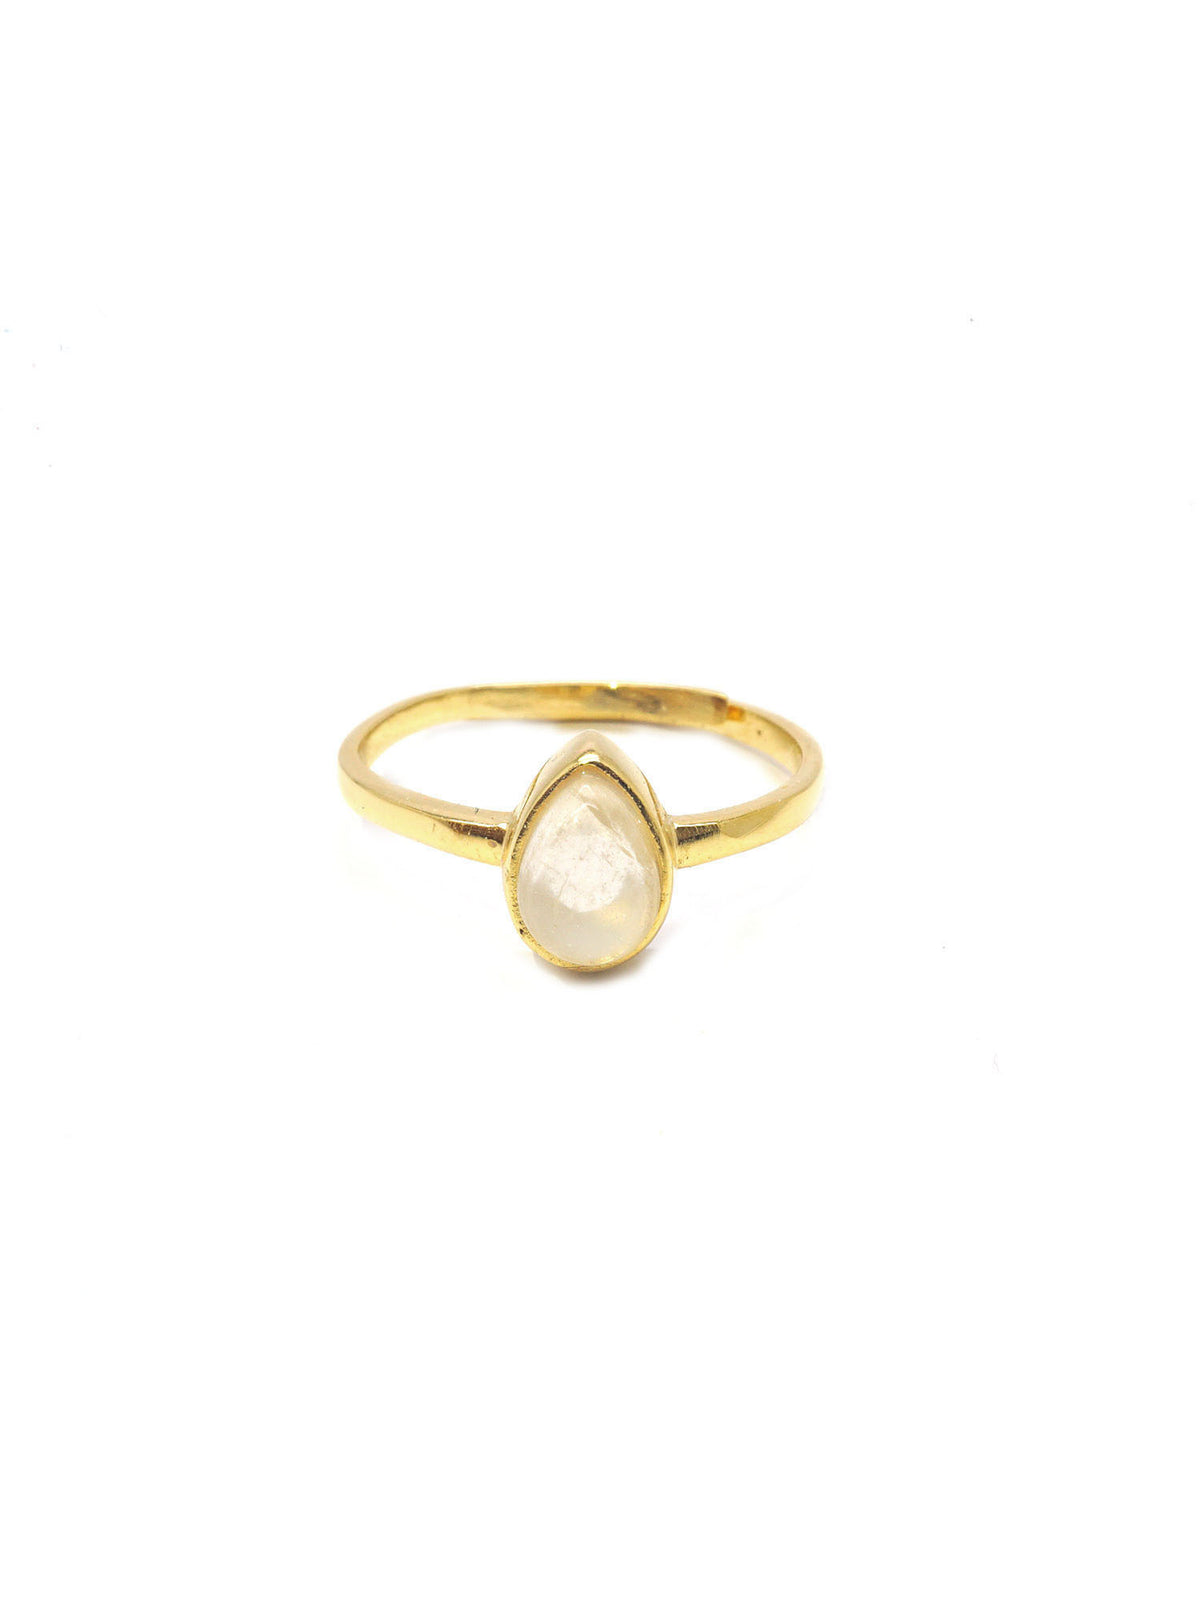 Dew Drop Ring - Gold - Moonstone